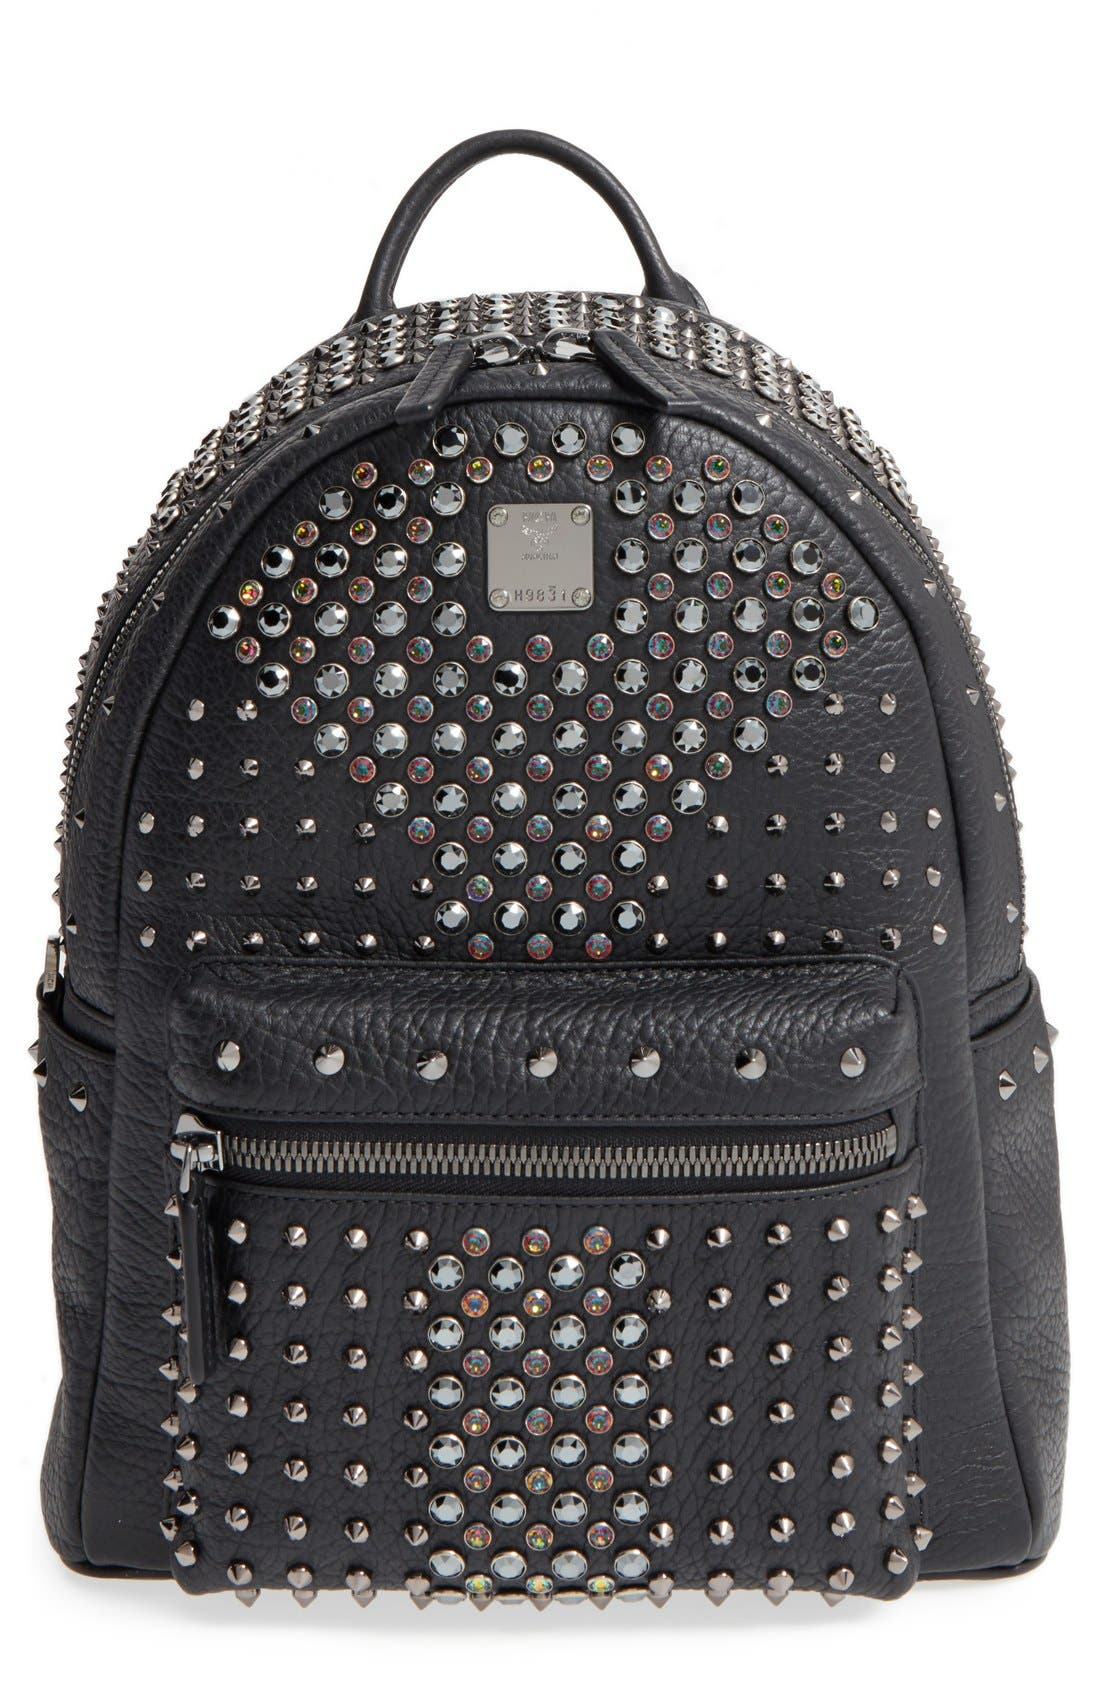 'Small Stark Special' Swarovski Crystal Embellished Leather Backpack,                             Main thumbnail 1, color,                             001